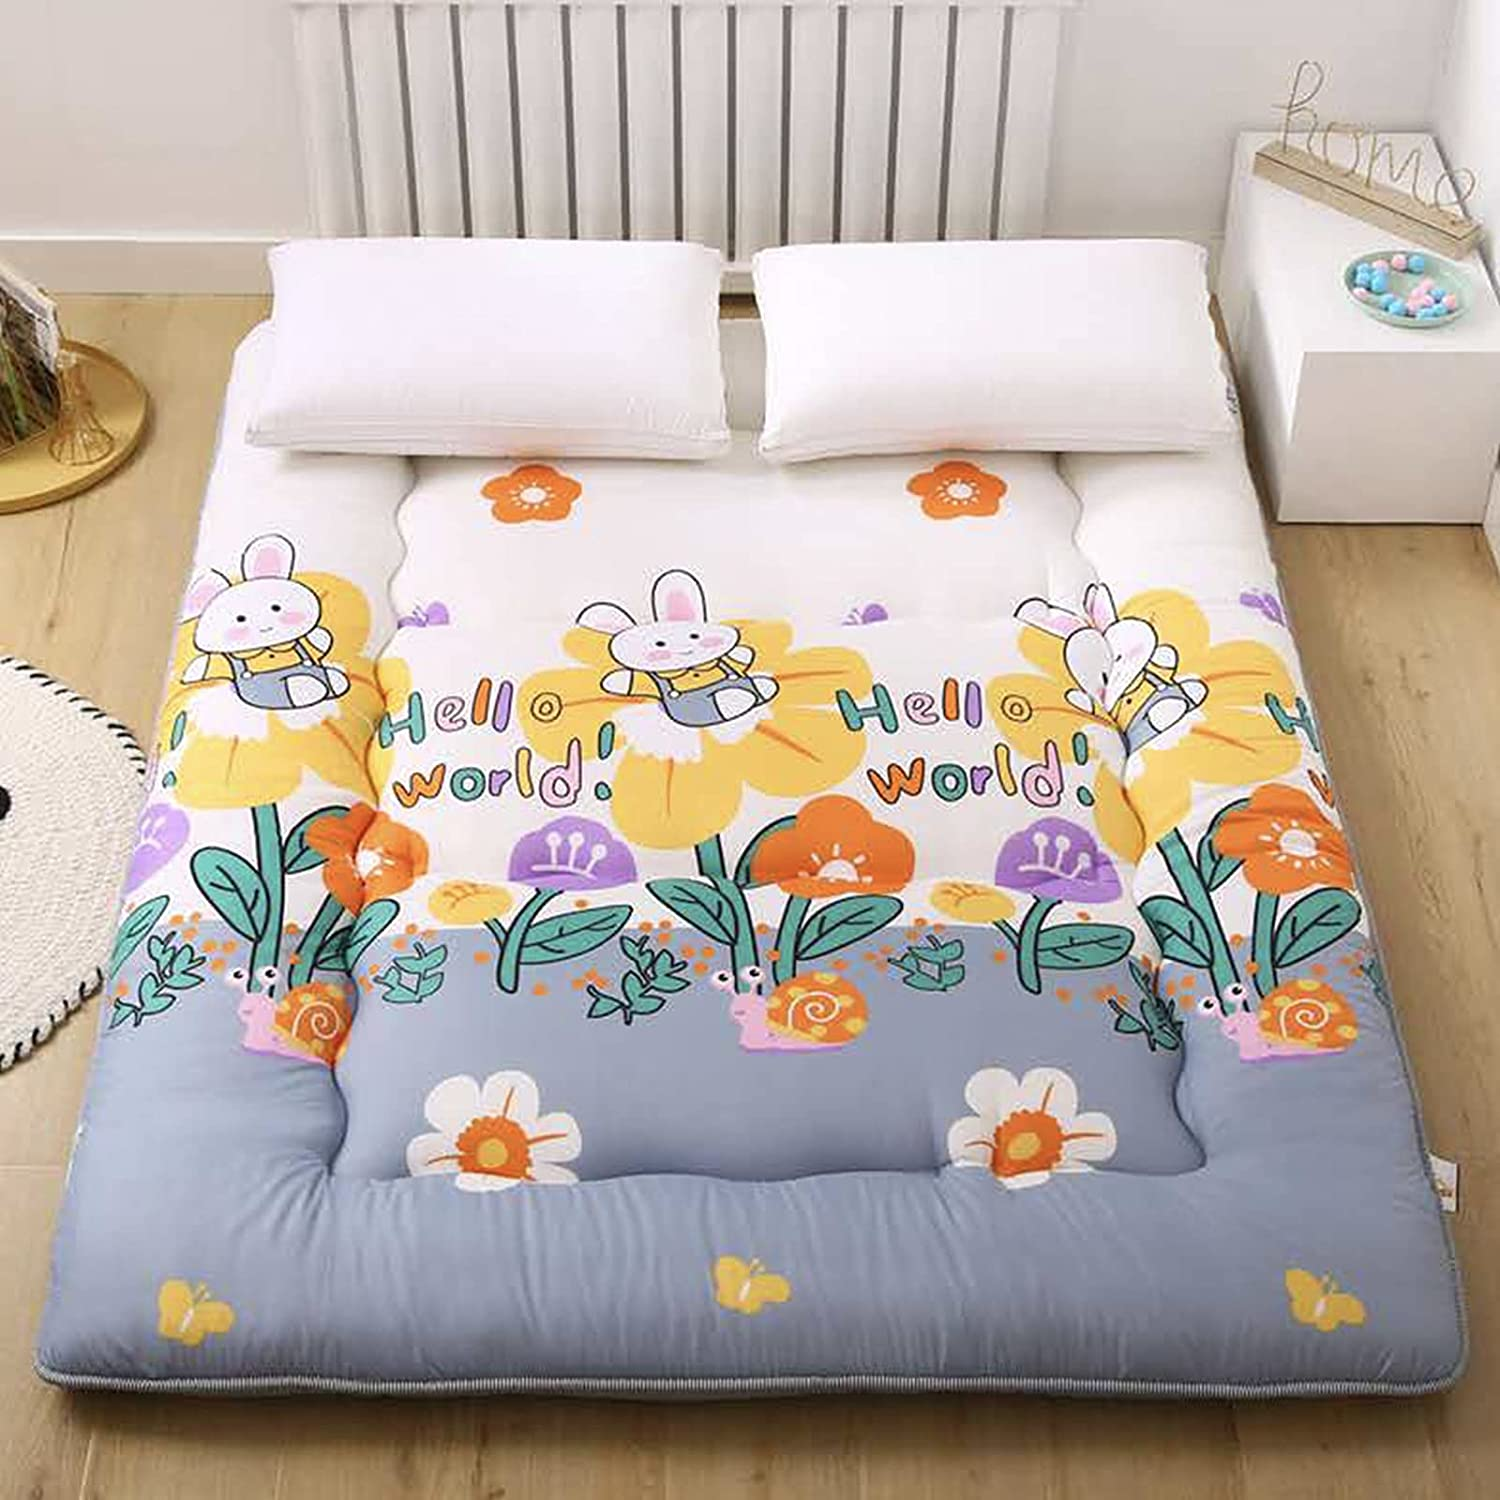 LIMIAO Japanese Futon Mattress Thicken Max 70% OFF Animer and price revision Tatami Folding